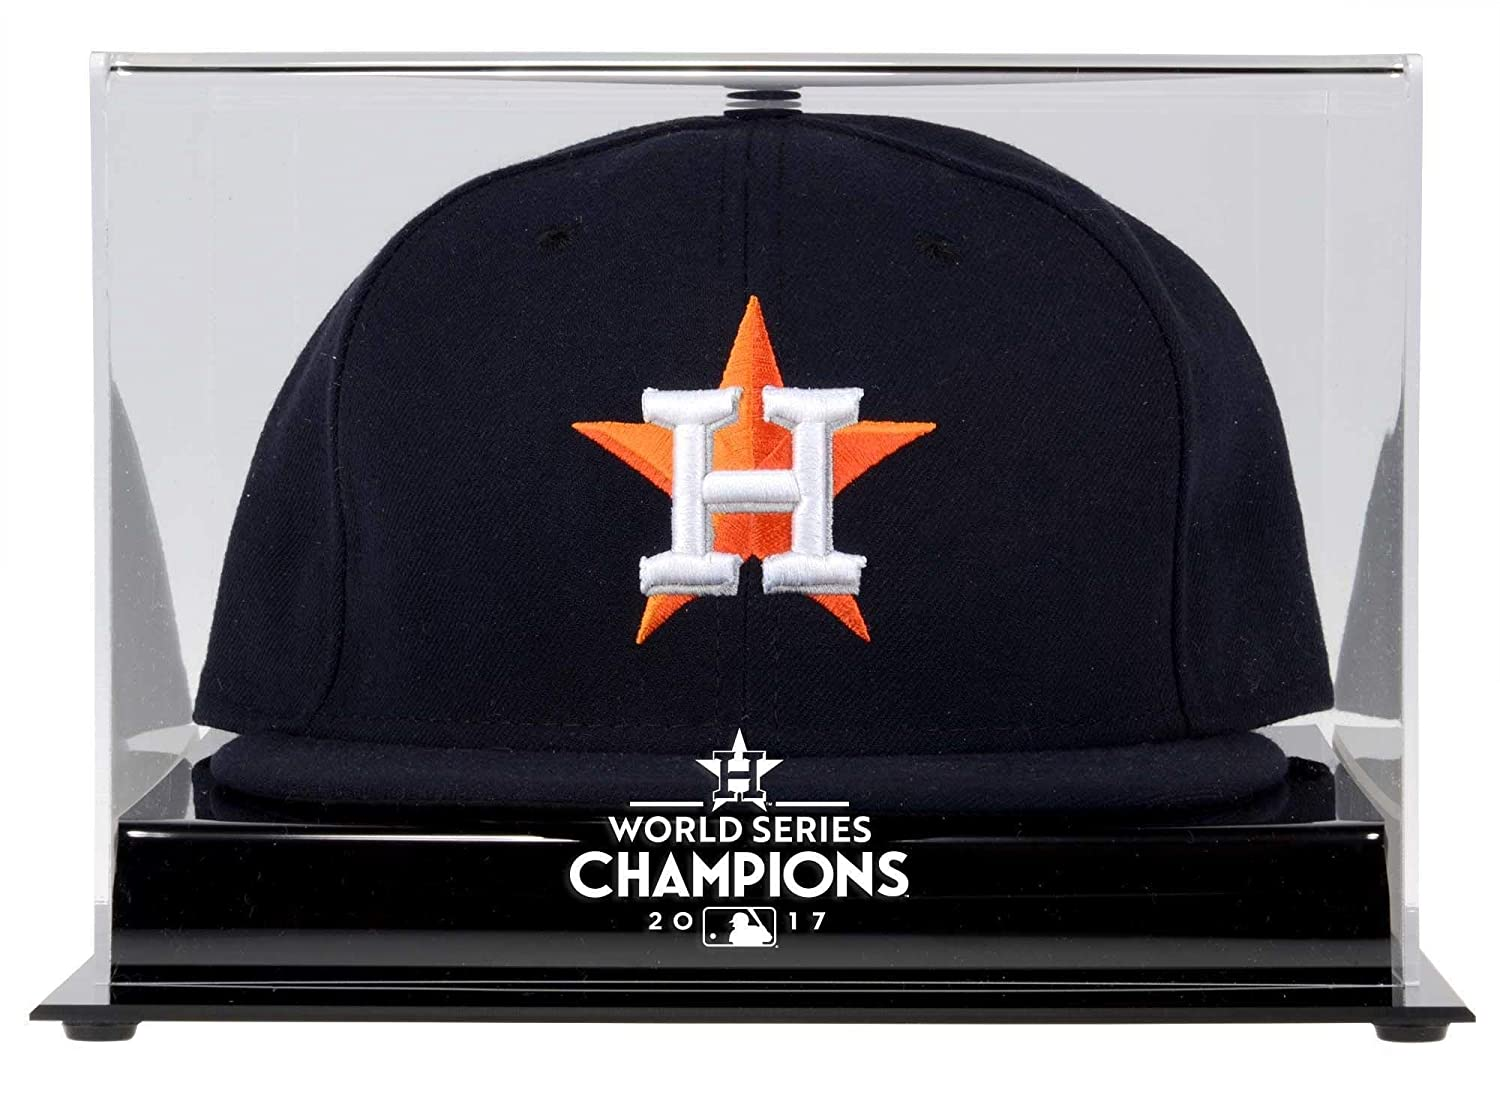 559264c9120 Amazon.com   Sports Memorabilia Houston Astros 2017 MLB World Series  Champions Acrylic Logo Cap Display Case - Baseball Hat Logo Display Cases    Sports   ...